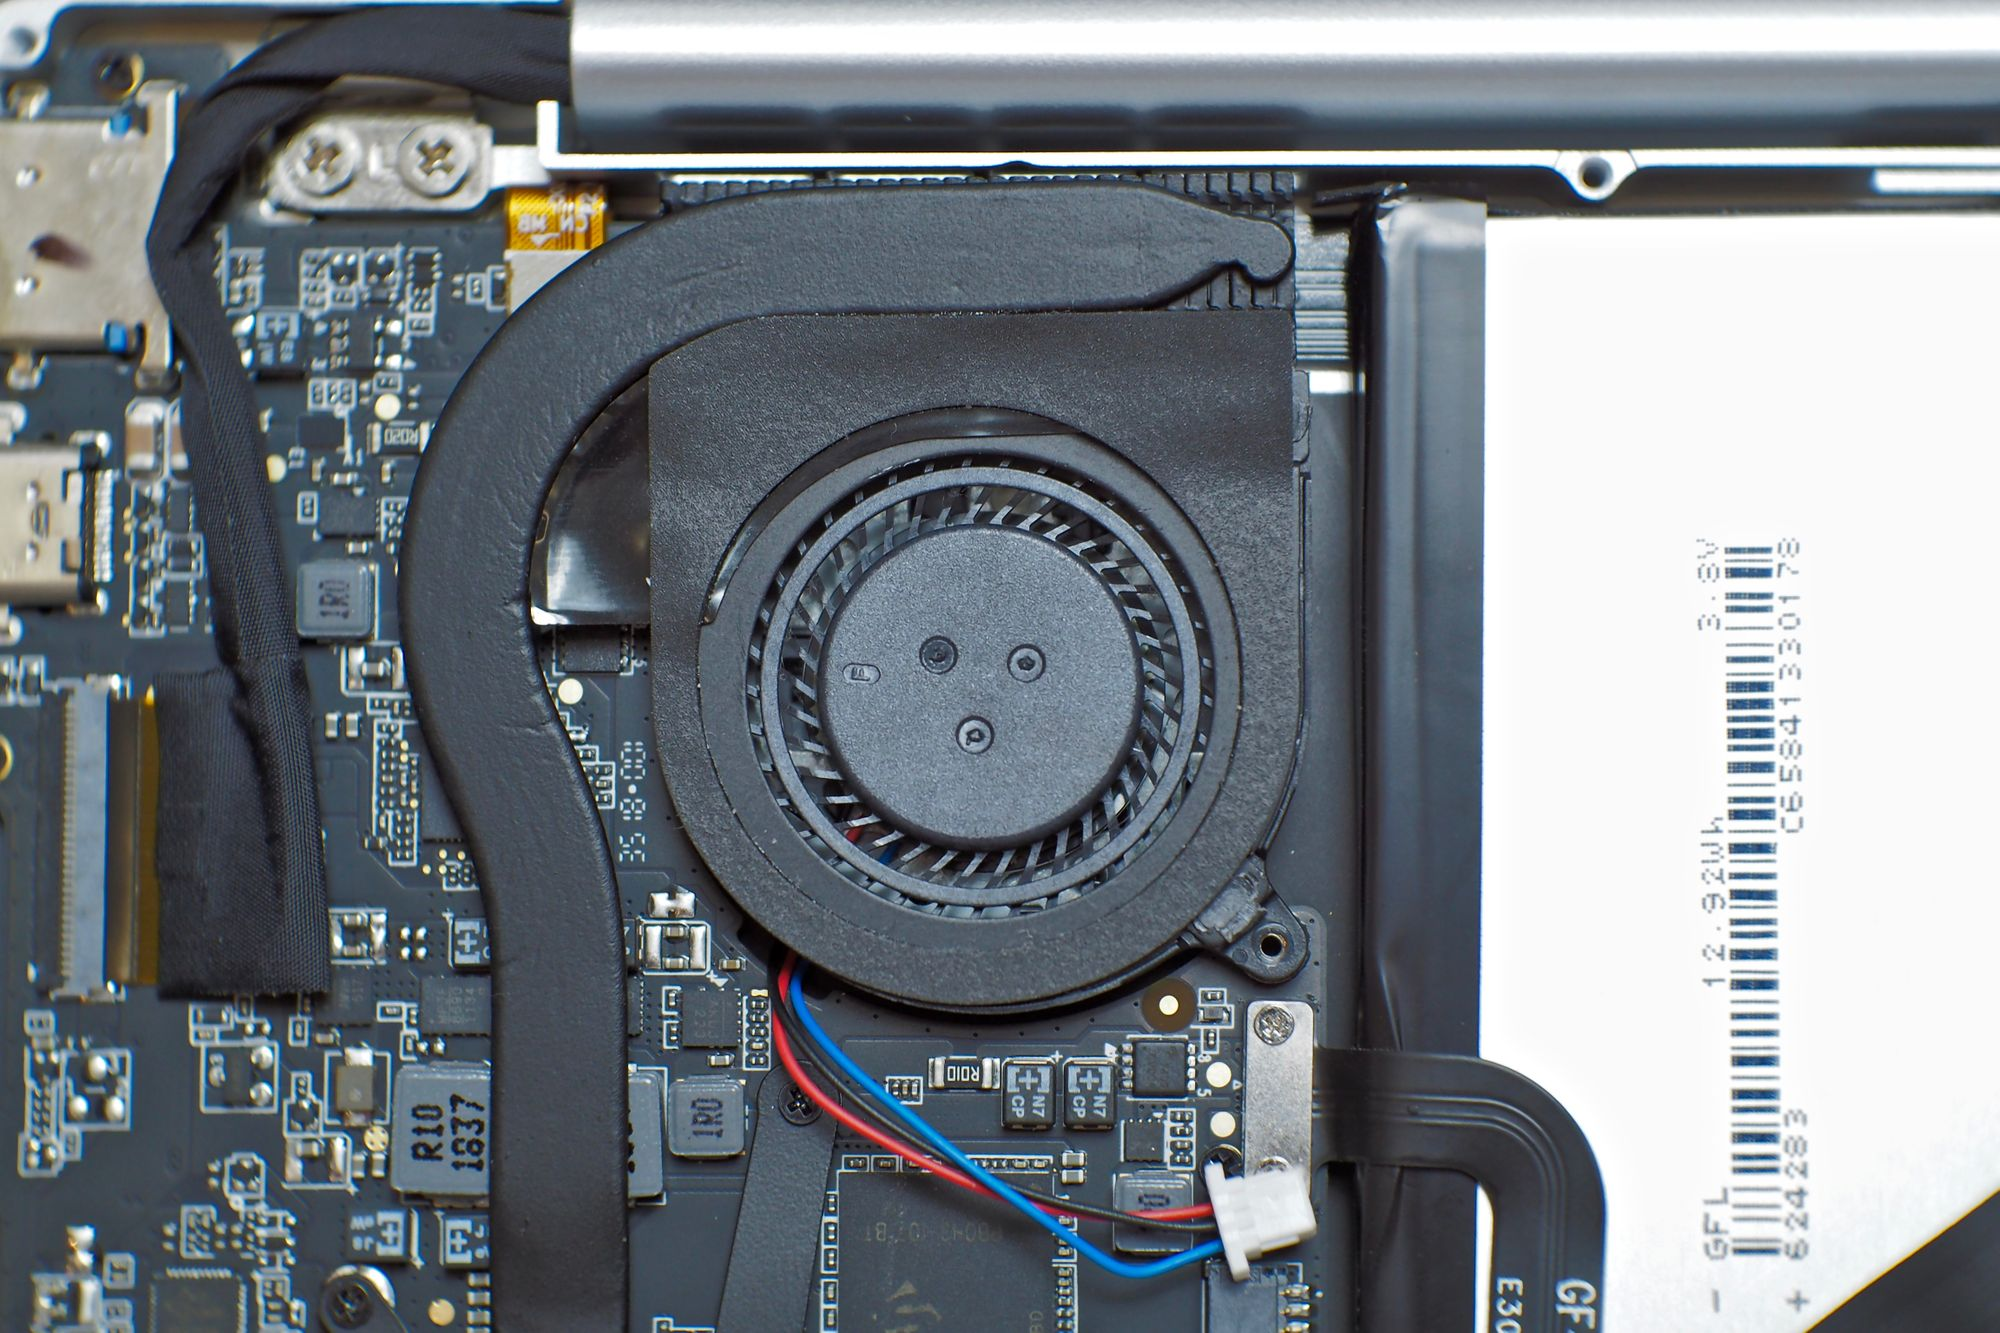 Applying new thermal paste on the GPD Pocket 2 for better thermals